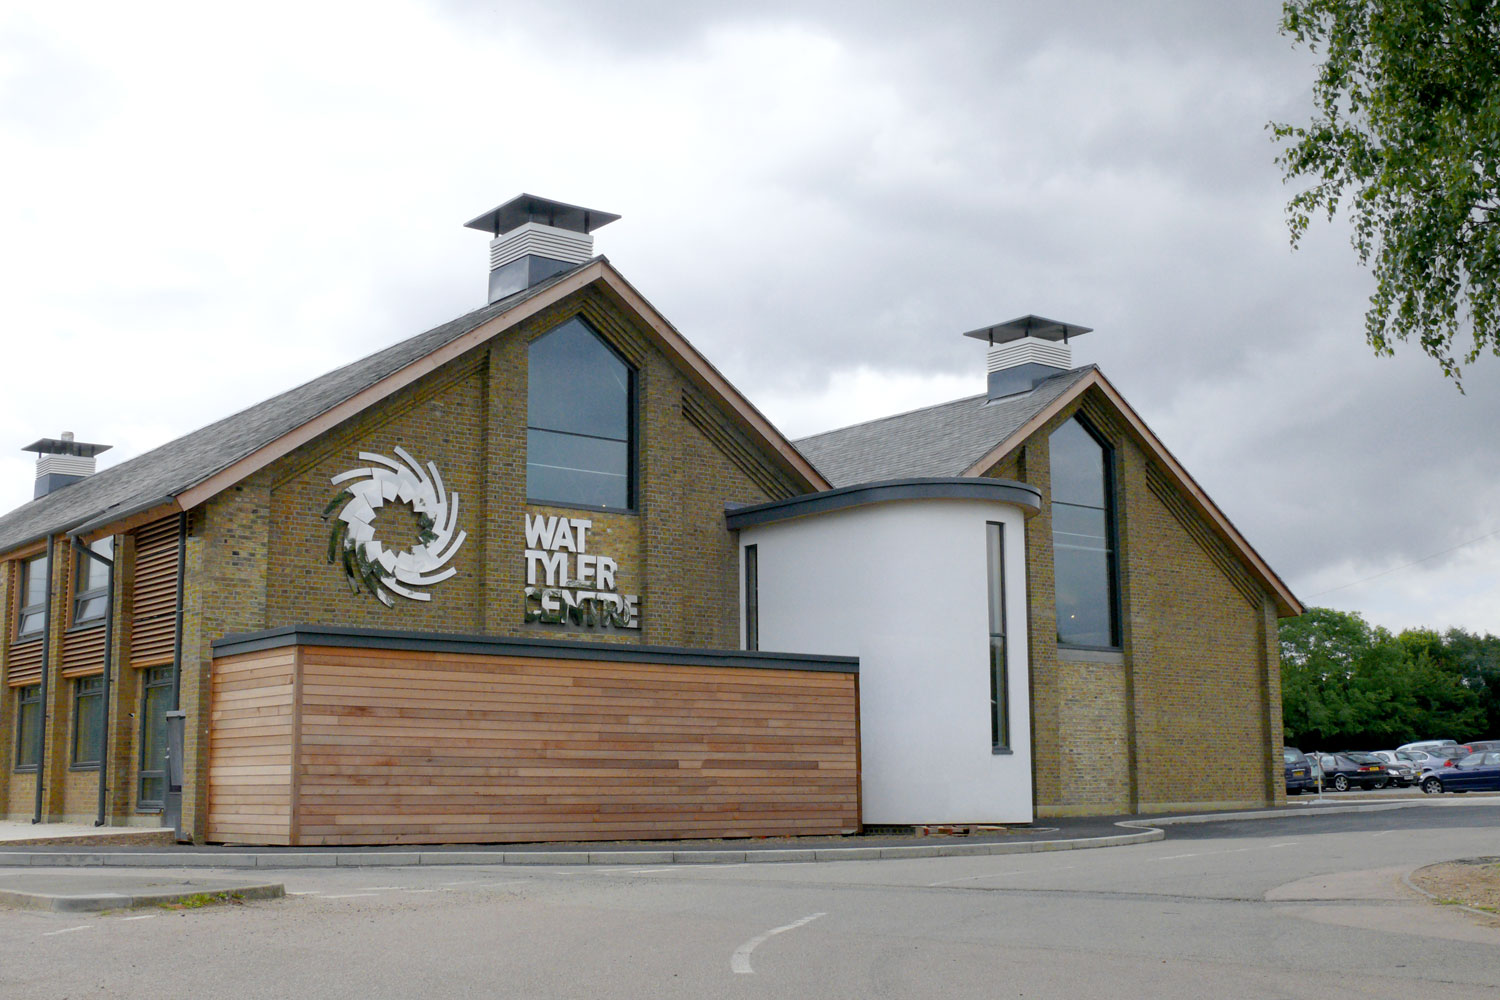 The Wat Tyler Centre offers spaces for everything from a board meeting to a big family wedding